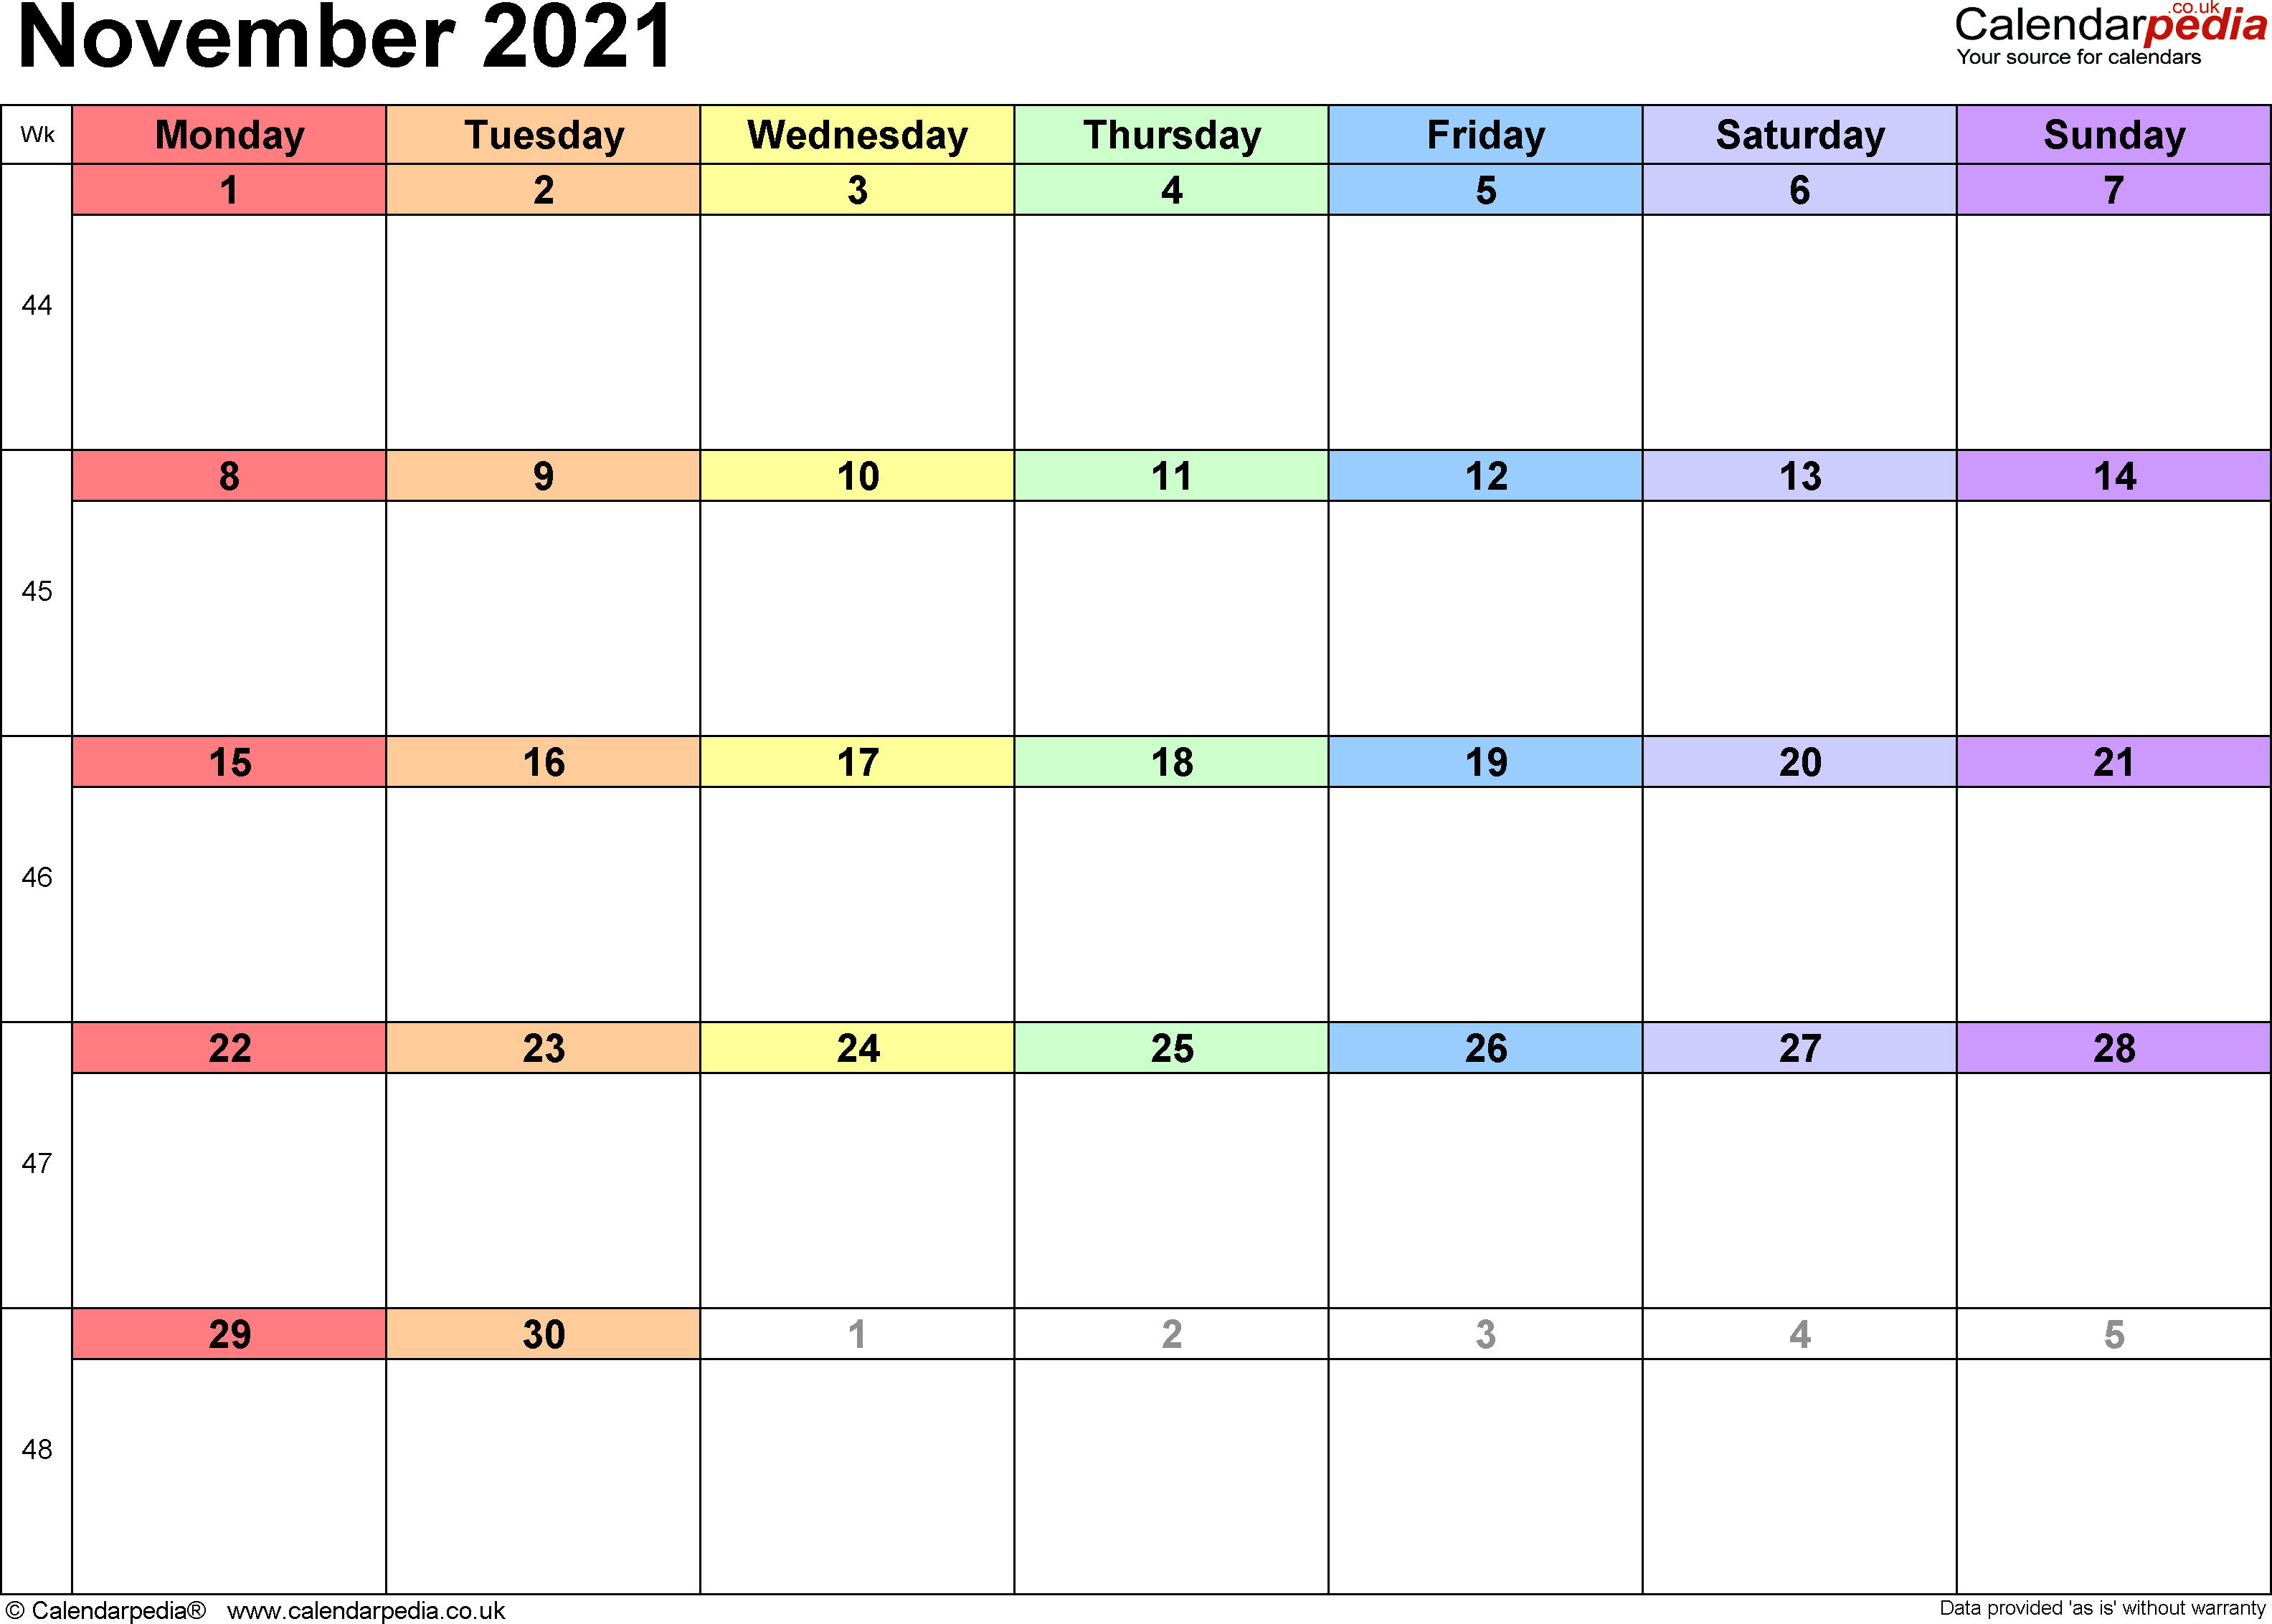 Calendar November 2021, landscape orientation, 1 page, with UK bank holidays and week numbers